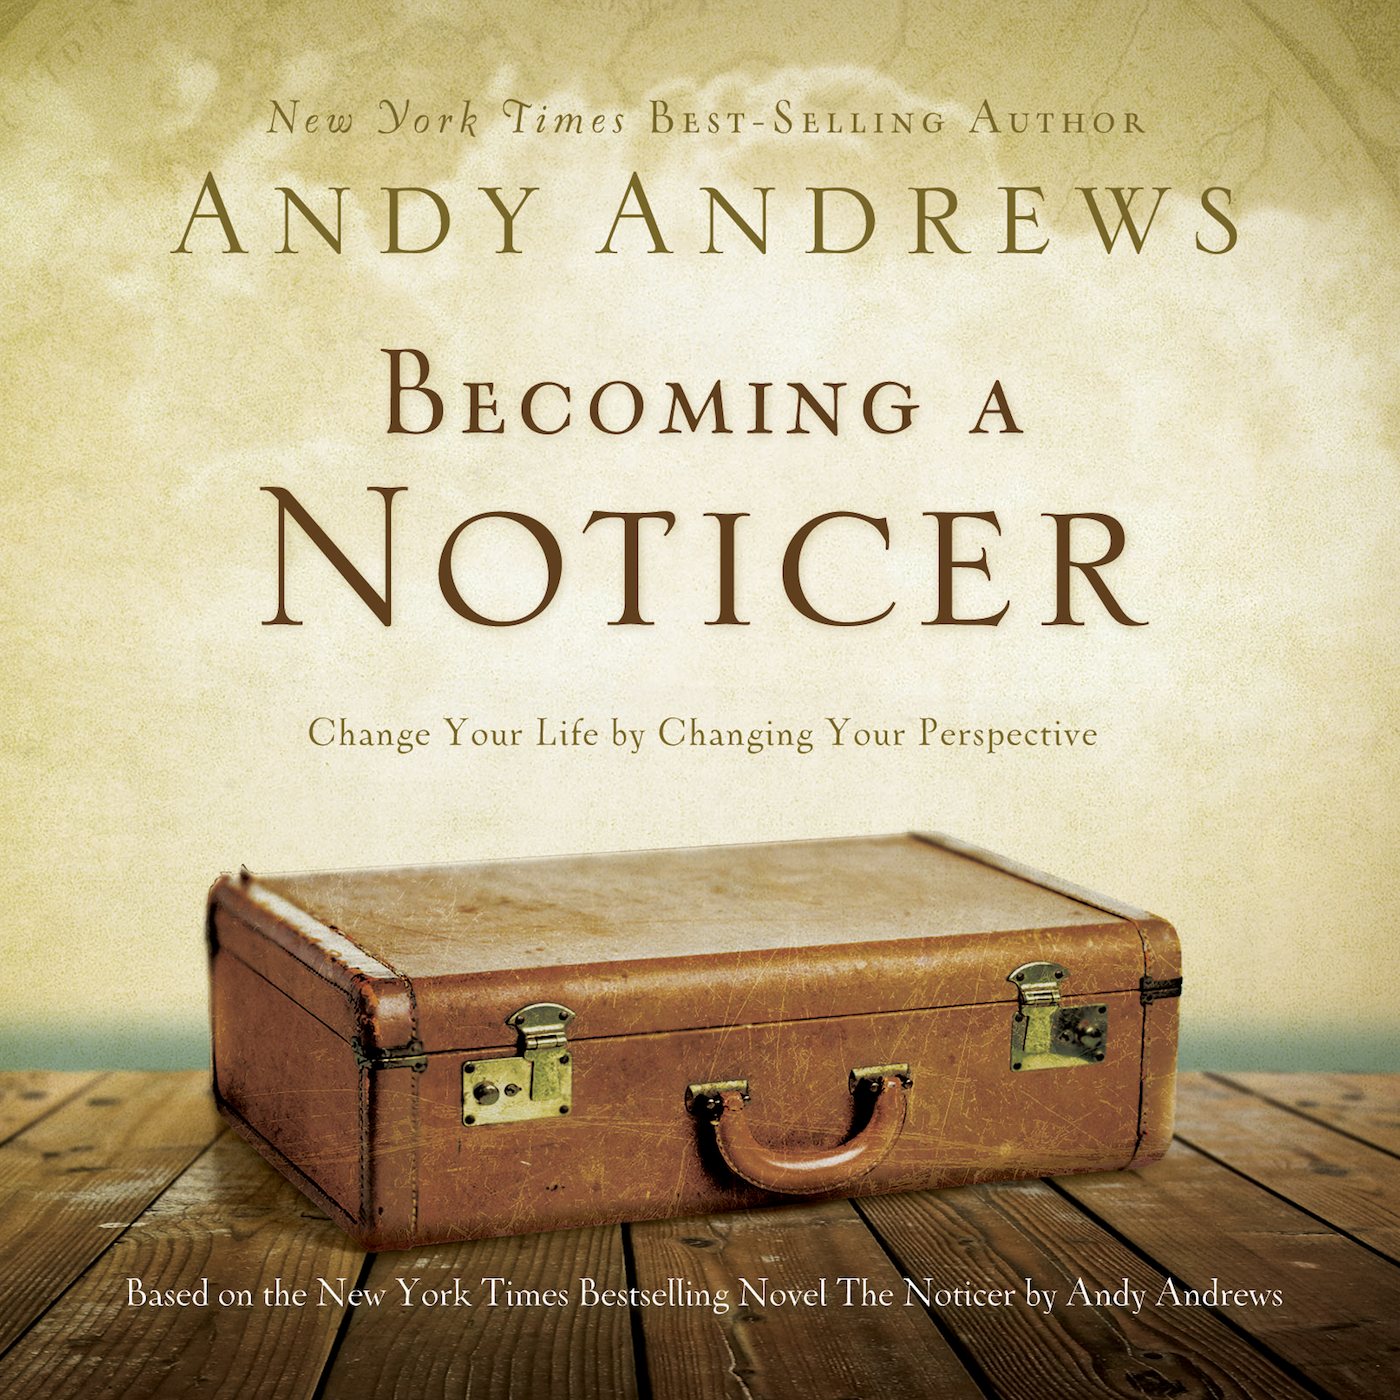 Becoming a Noticer